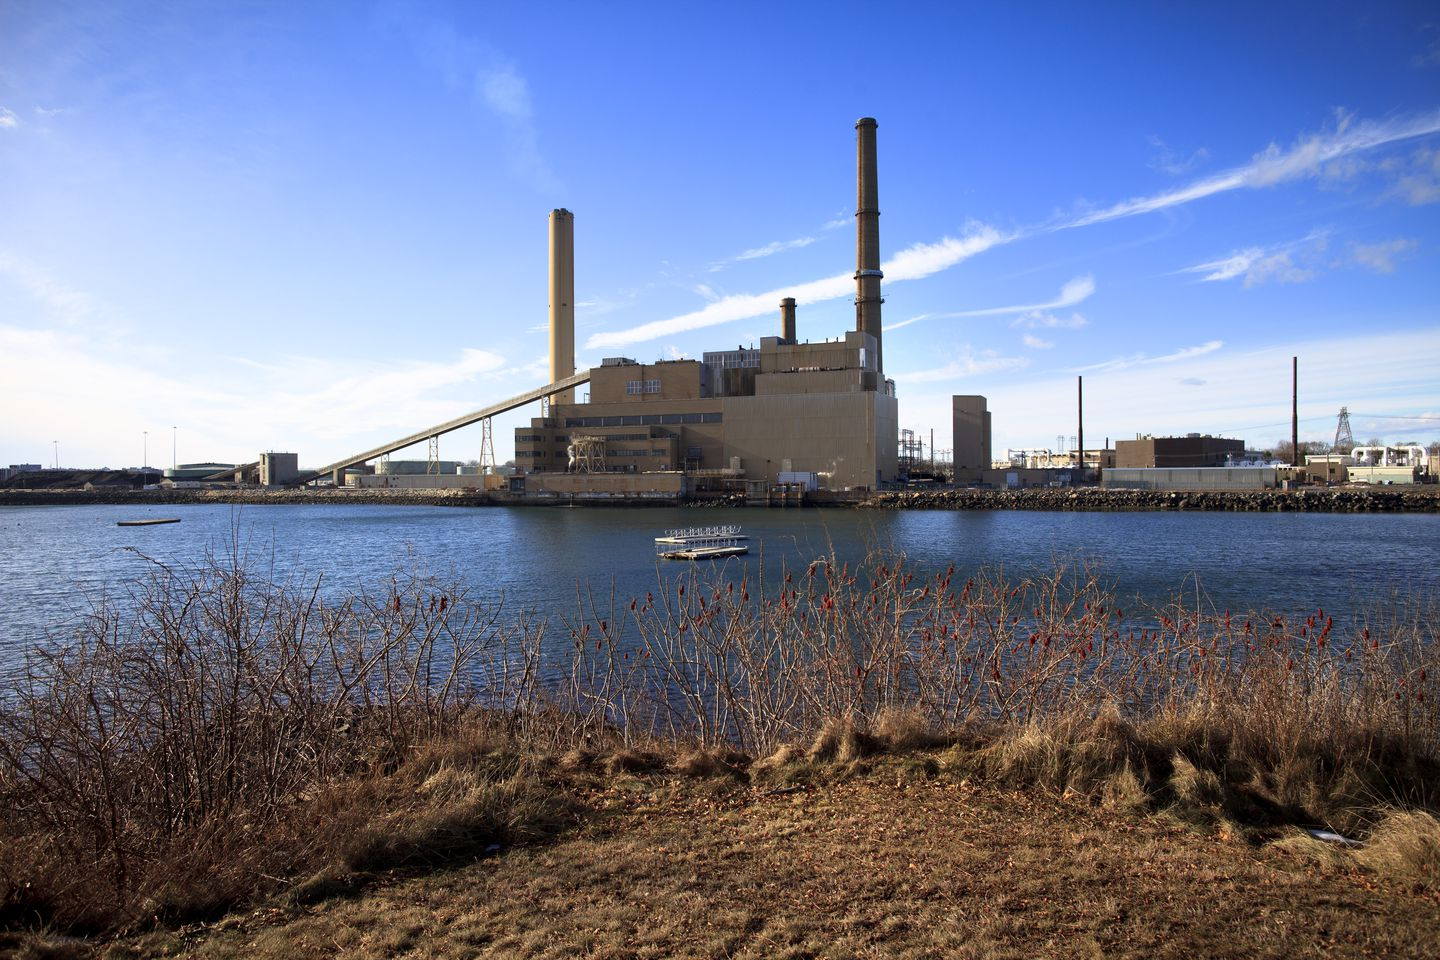 The Salem Harbor Power Station was purchased by Footprint Power and turned from a coal- and oil-fired plant into one that runs on natural gas.